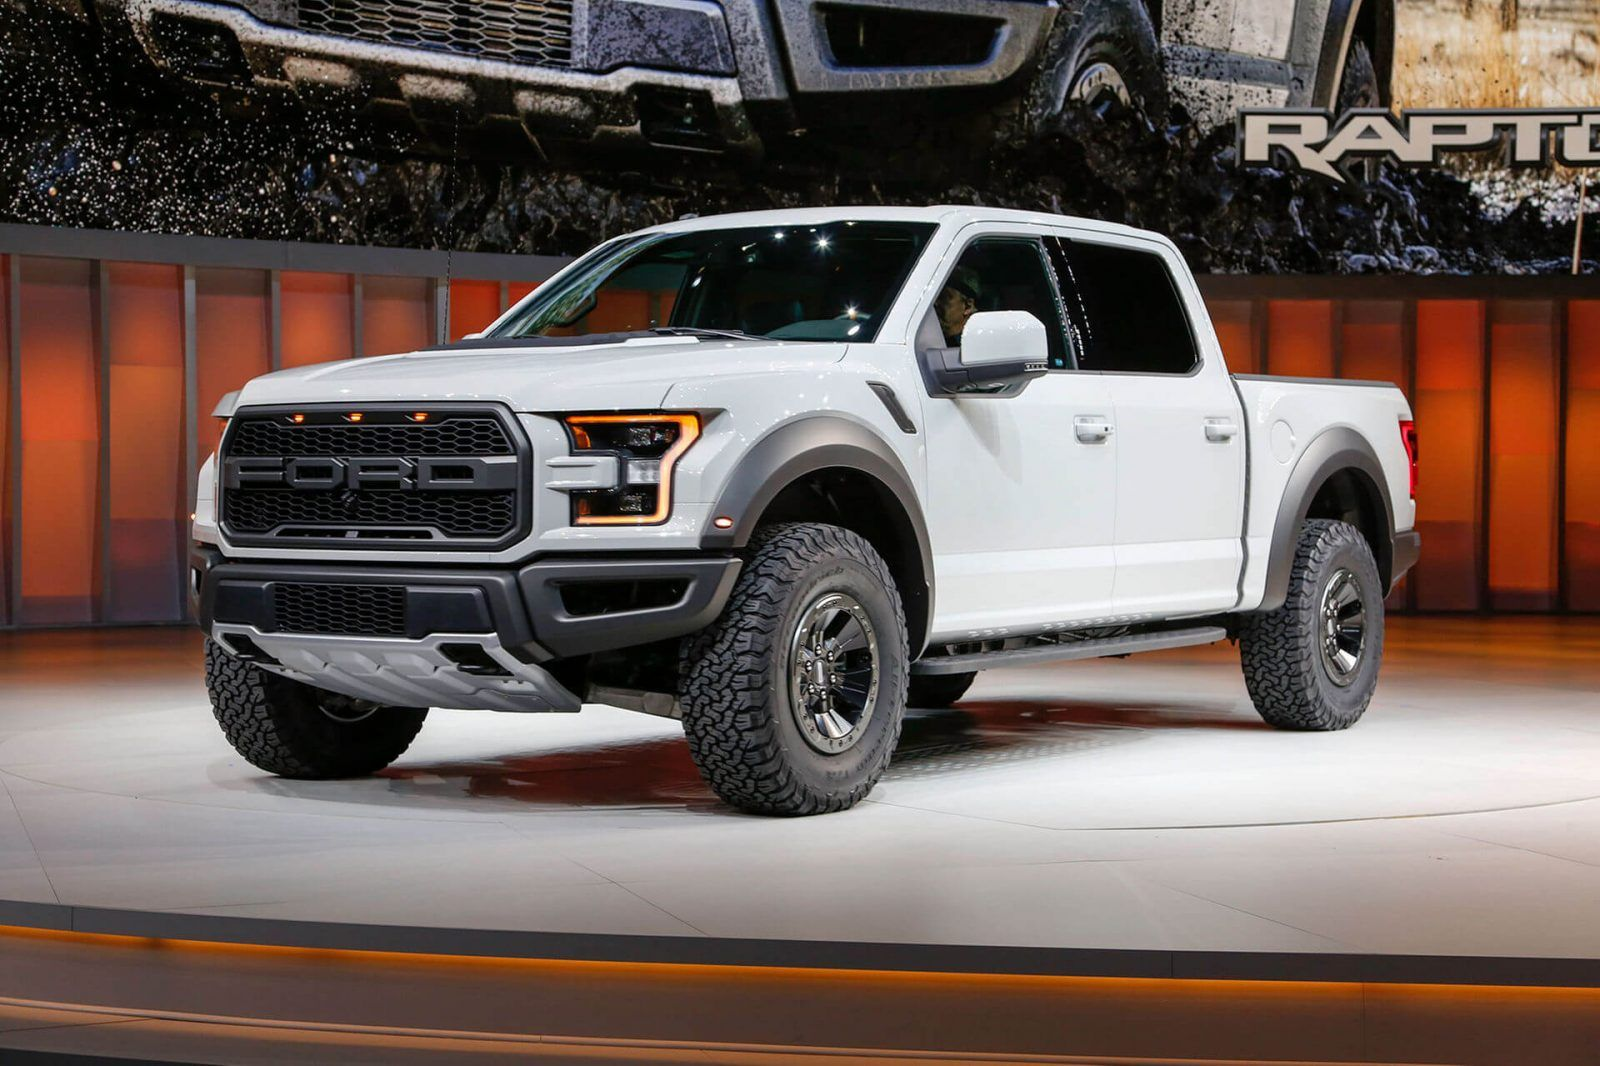 2017 Ford Raptor Supercrew Revealed At Detroit Autoshow With